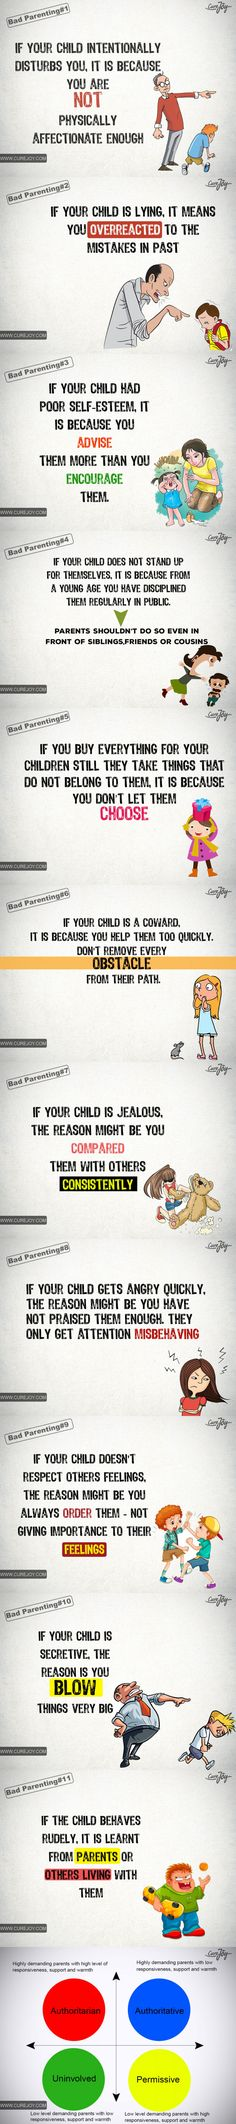 Because person who pinned this is a psychologist doesn't make it sound advice . I like the reminder that sometimes we create issues . Found parents some advice, trust me I'm a psychologist - Kids And Parenting, Parenting Hacks, Parenting Styles, Mindful Parenting, Natural Parenting, Parenting Ideas, Foster Parenting, Gentle Parenting, Parenting Quotes